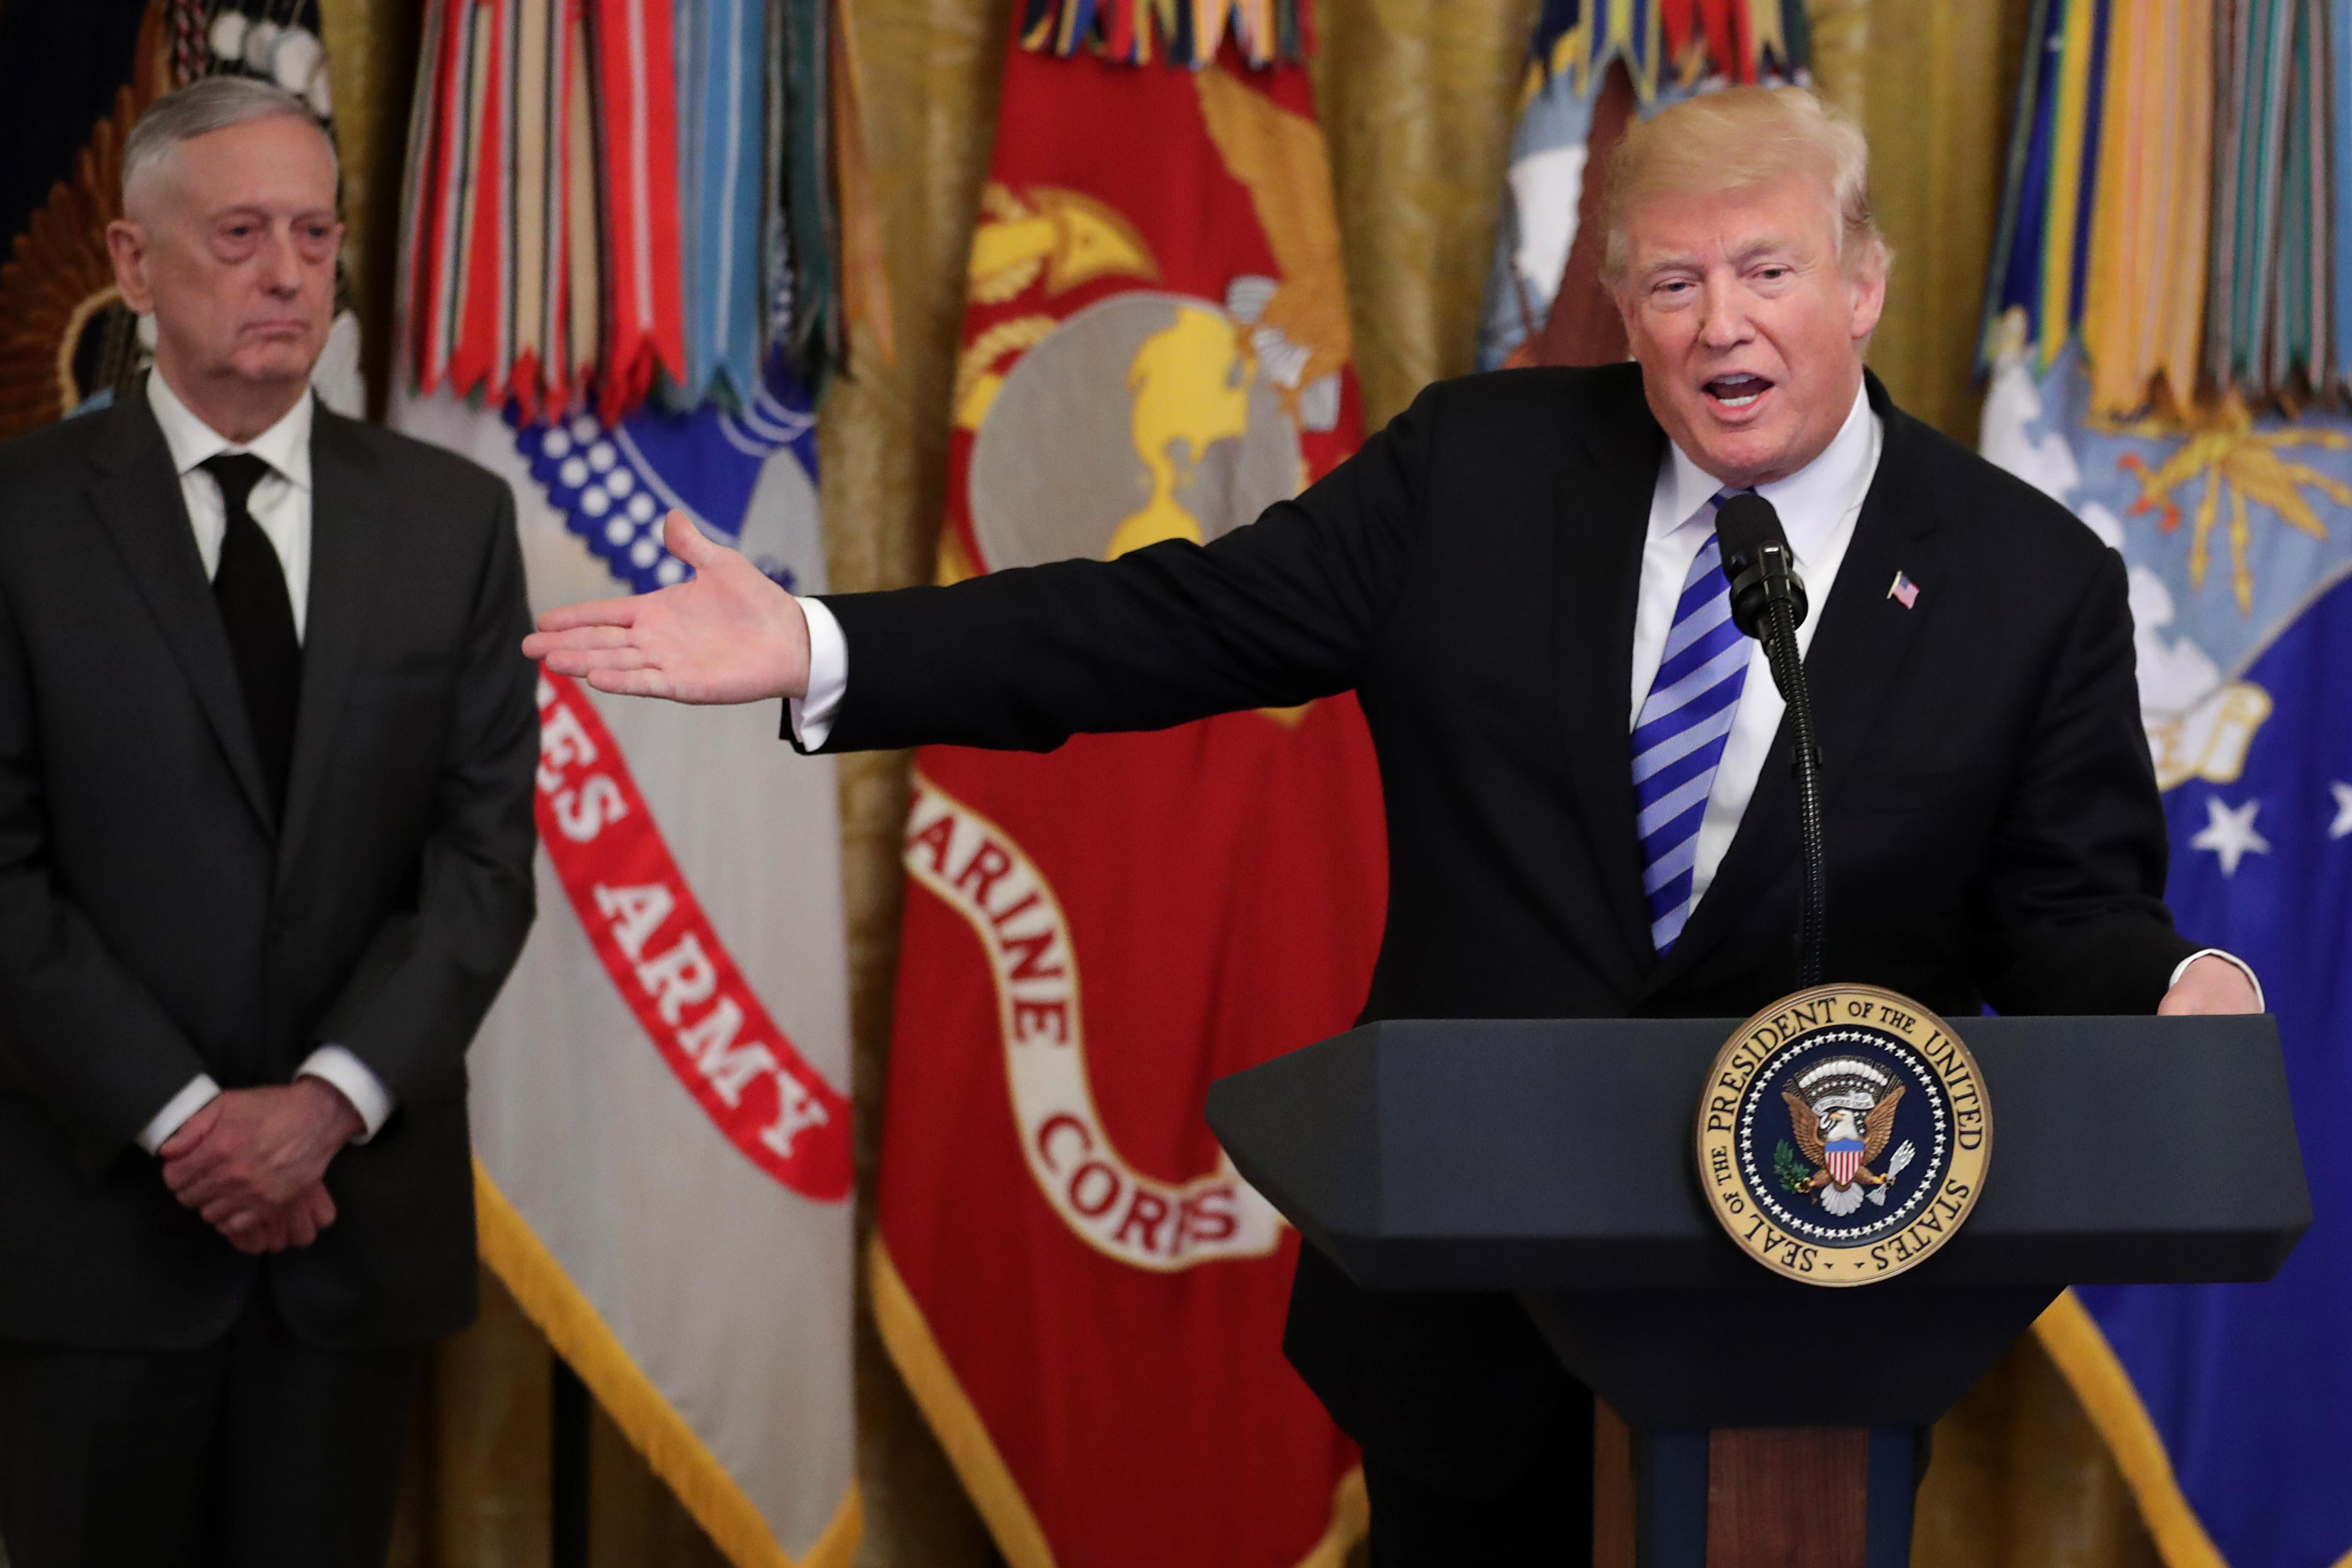 President Donald Trump hosts a reception commemorating the 35th anniversary of attack on the Beirut Barracks with Secretary of Defense James Mattis in the East Room of the White House October 25, 2018 in Washington, D.C.